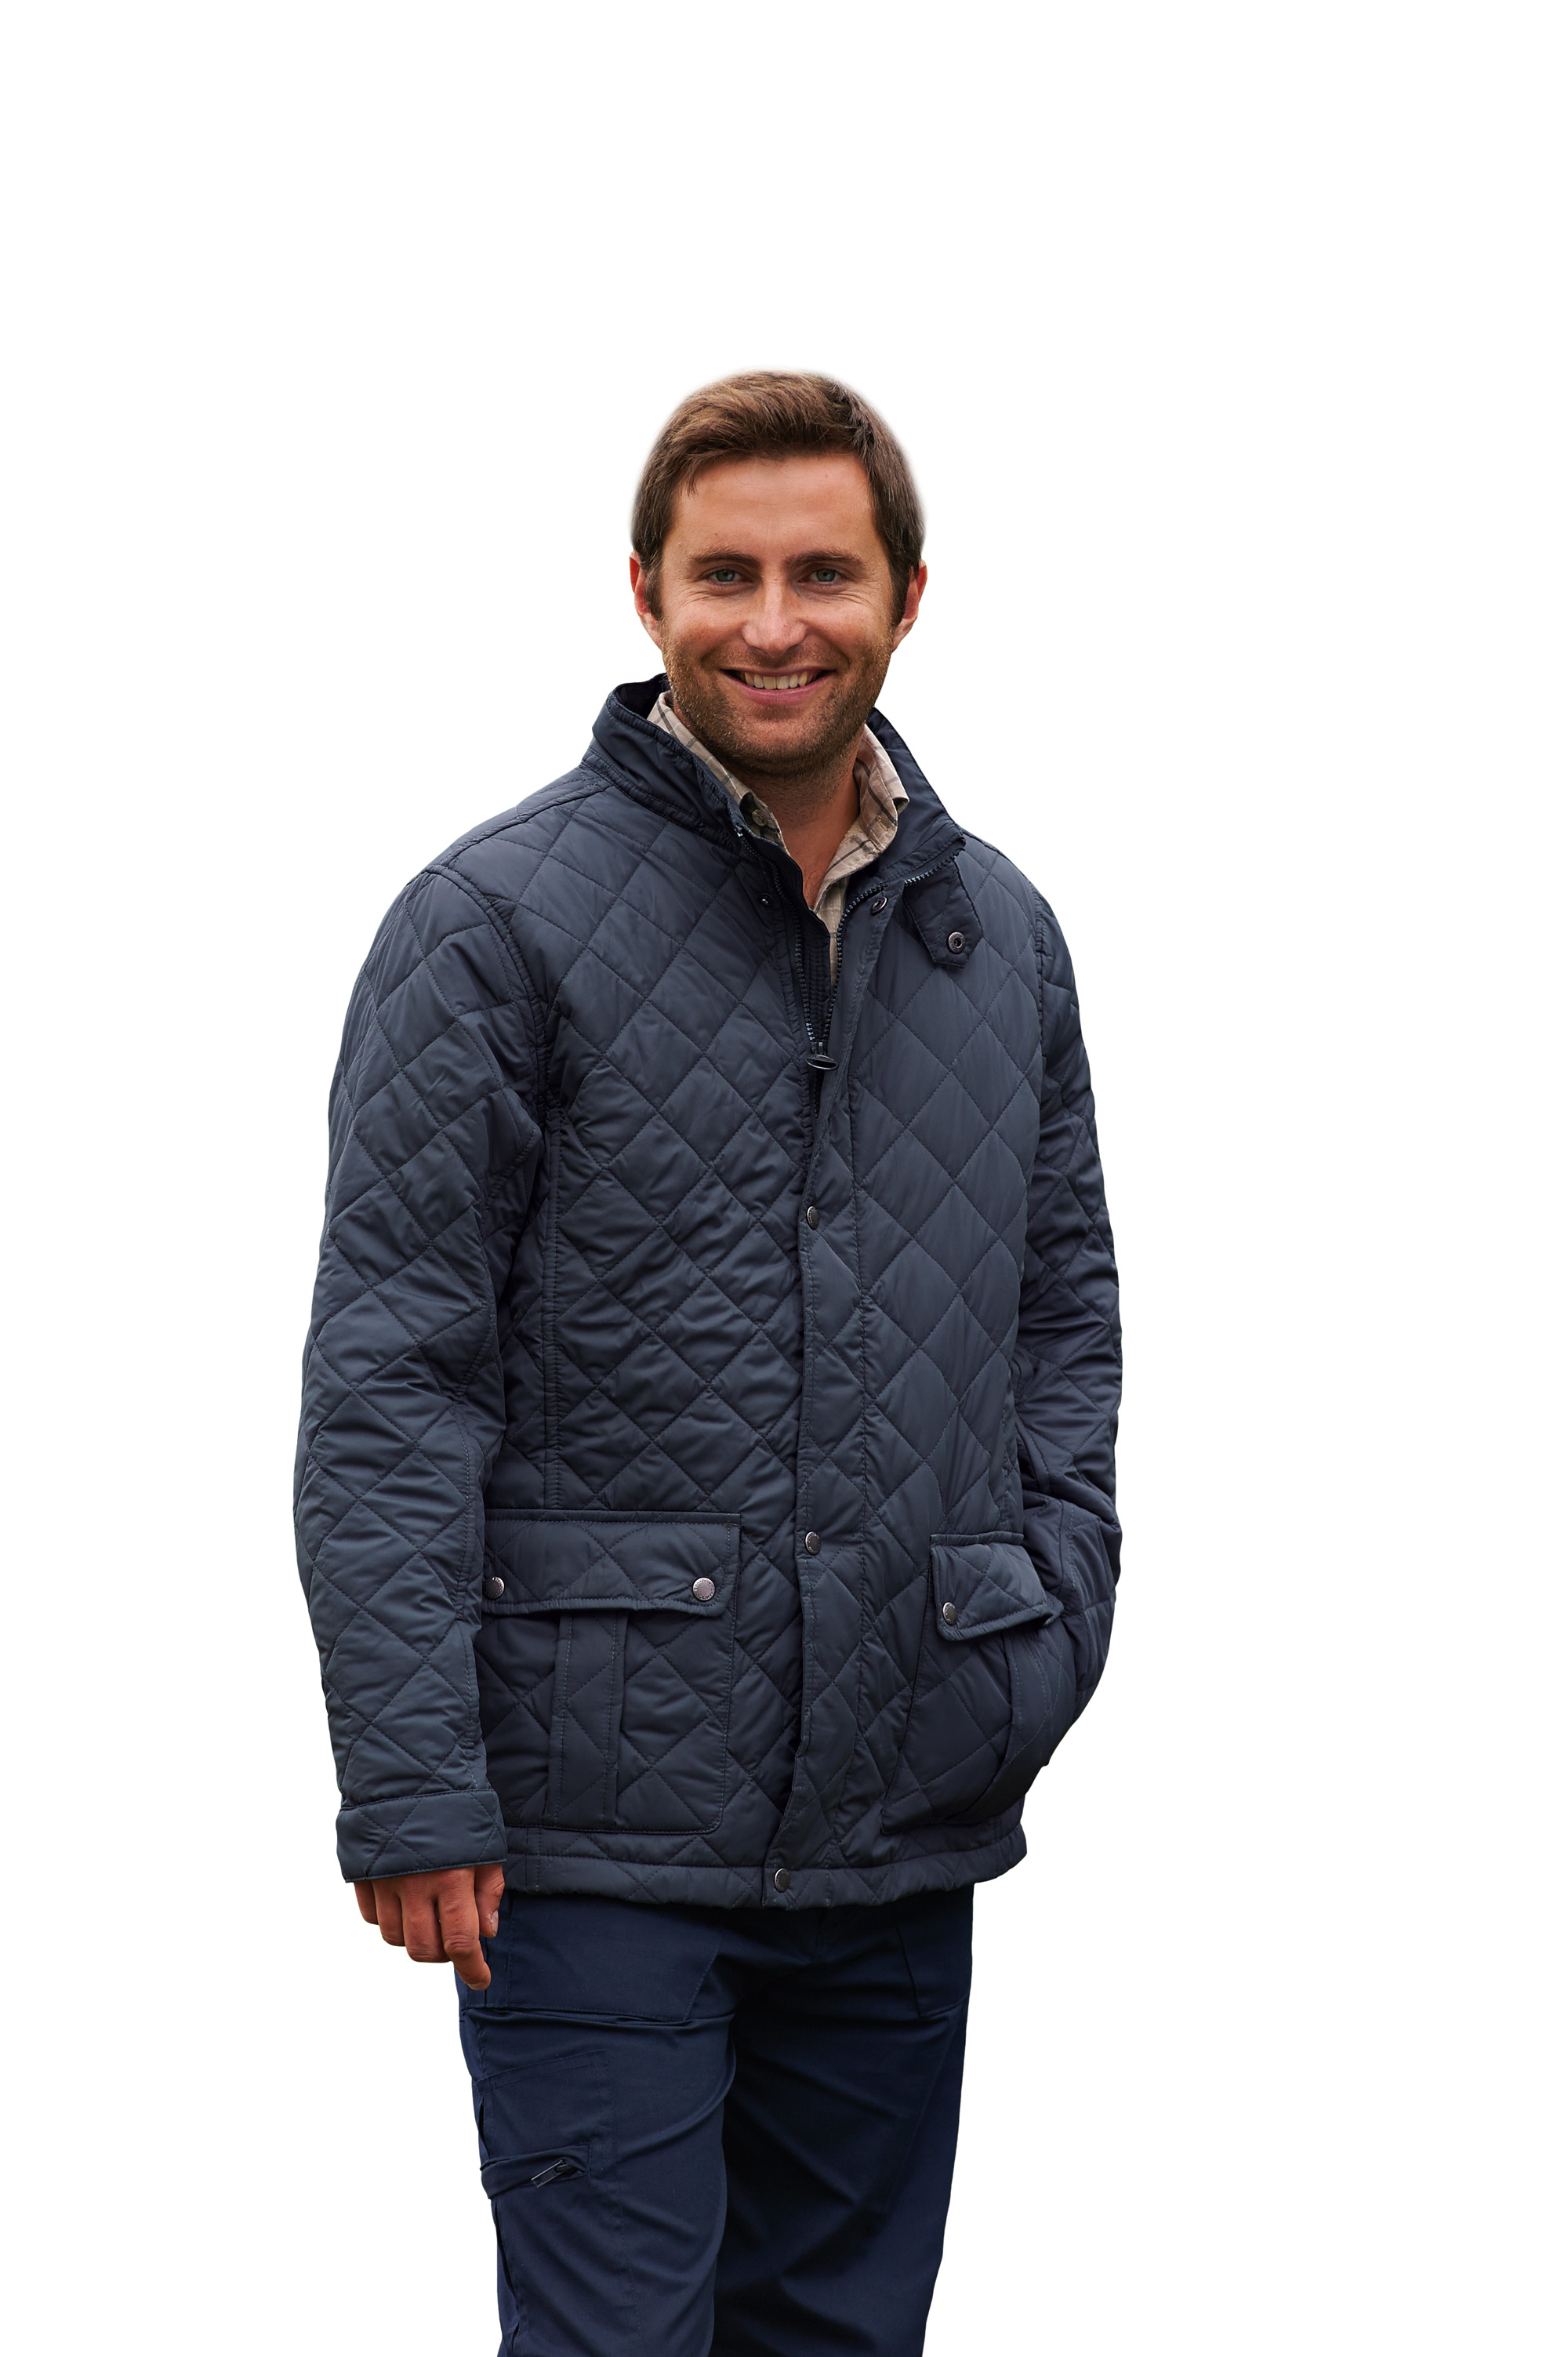 men hackett mens jackets quilted quilt s jacket coats p norfolk clothing lrg padded